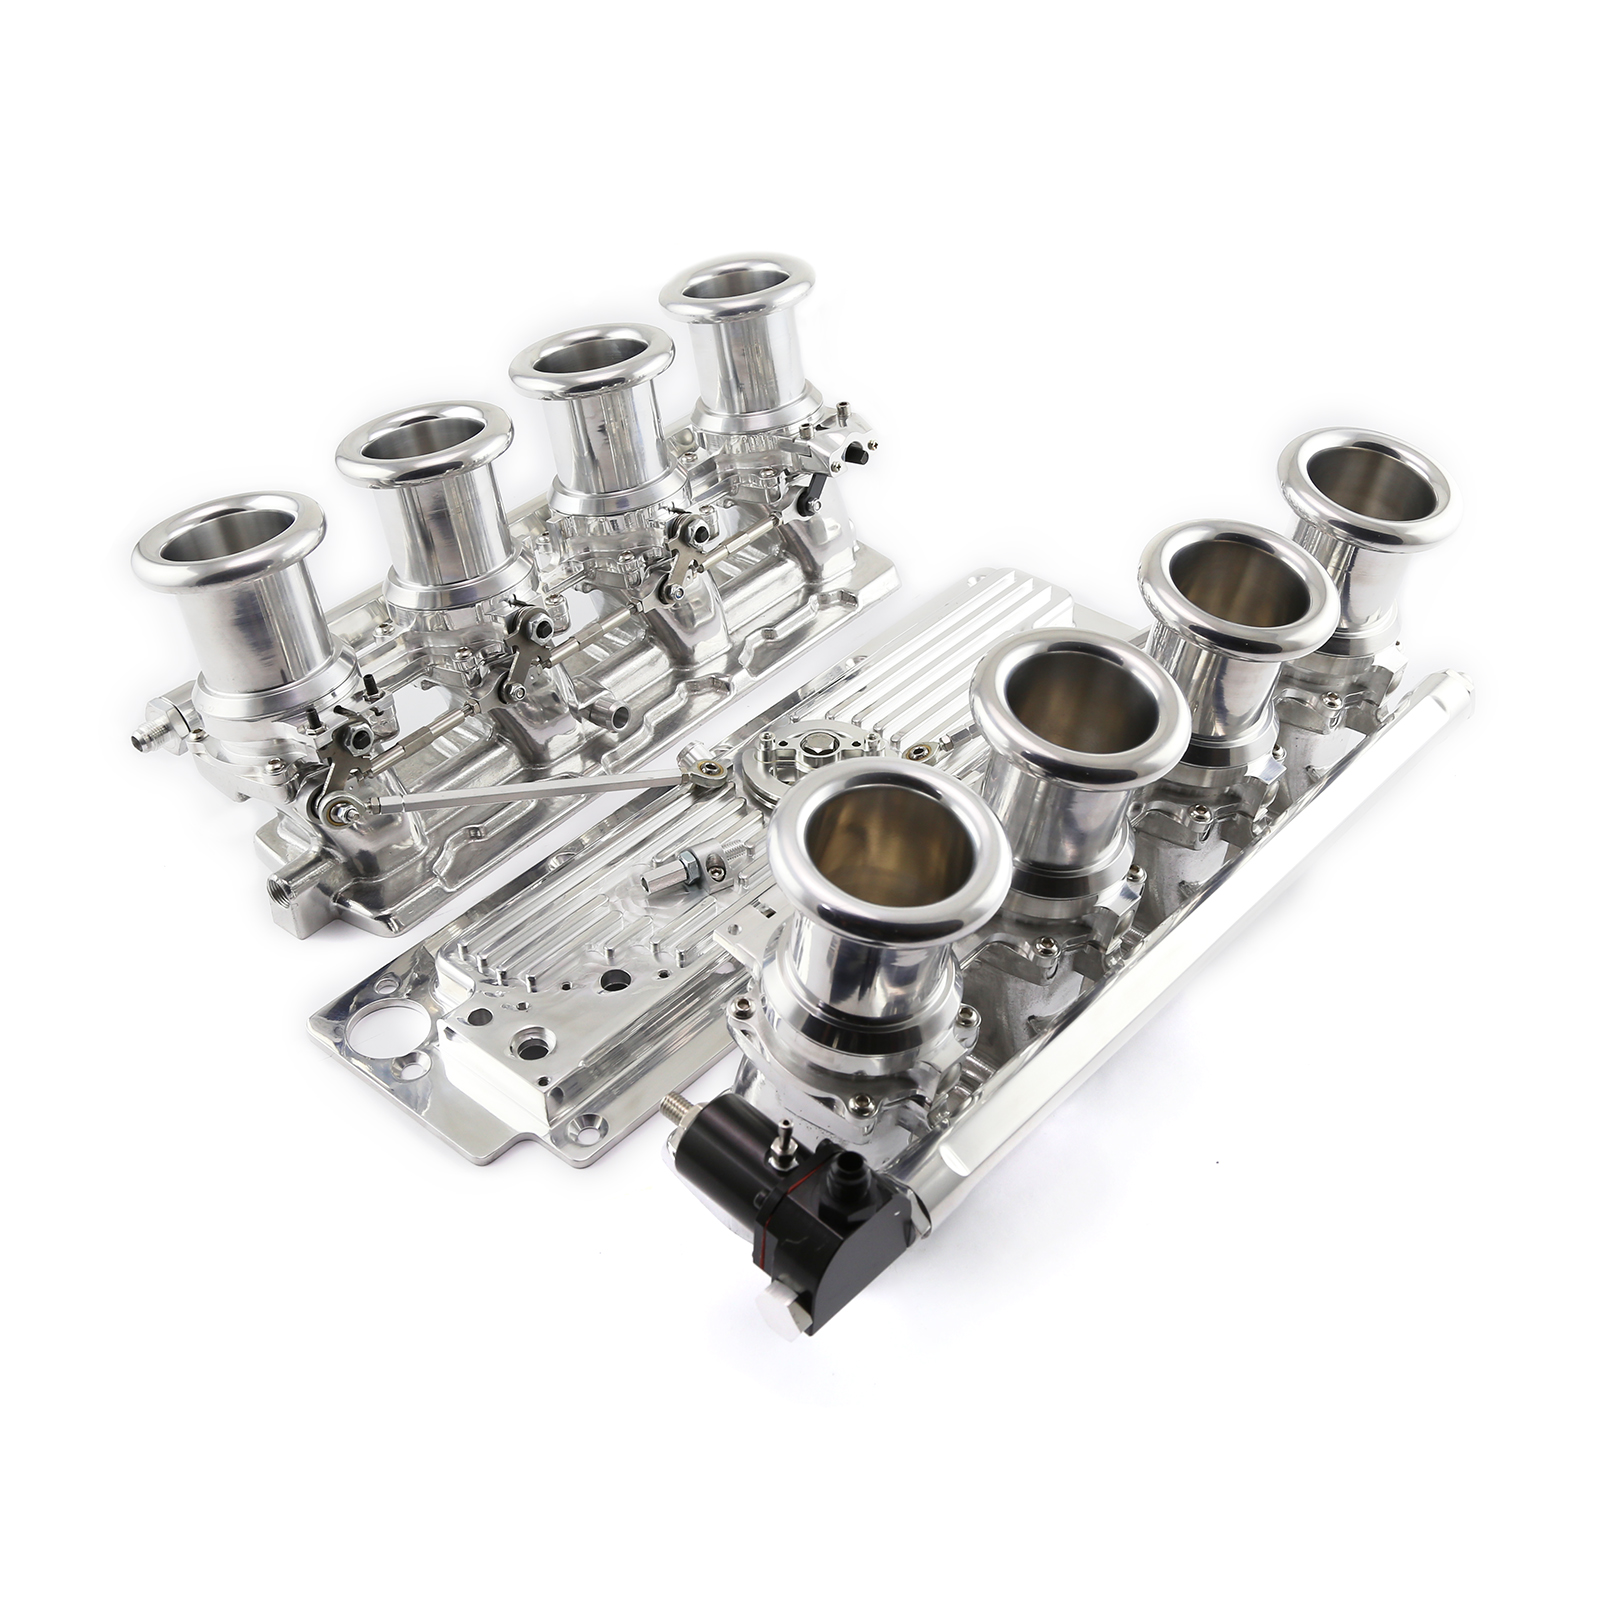 Chevy GM LS3 Downdraft EFI Stack Intake Manifold System Complete Polished